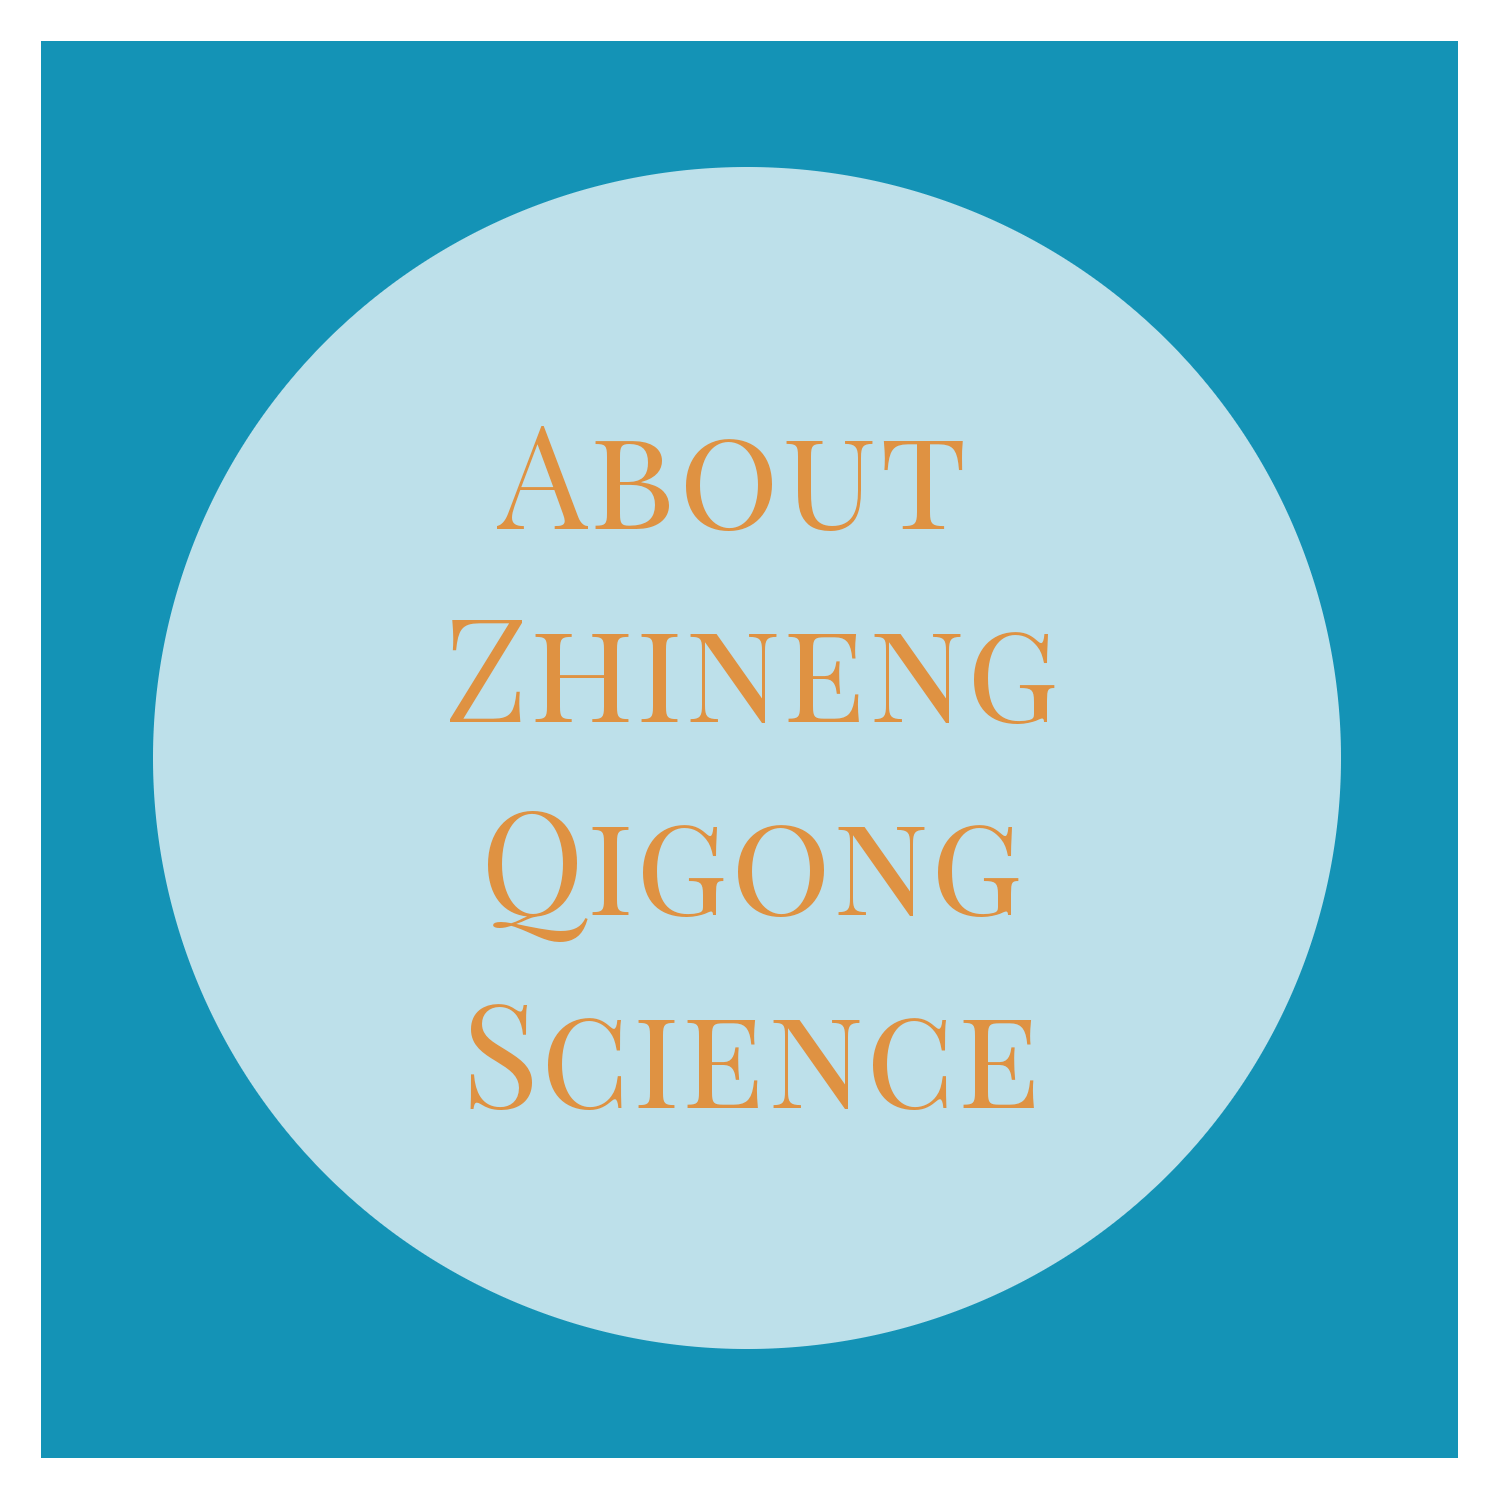 aboutznqgscience